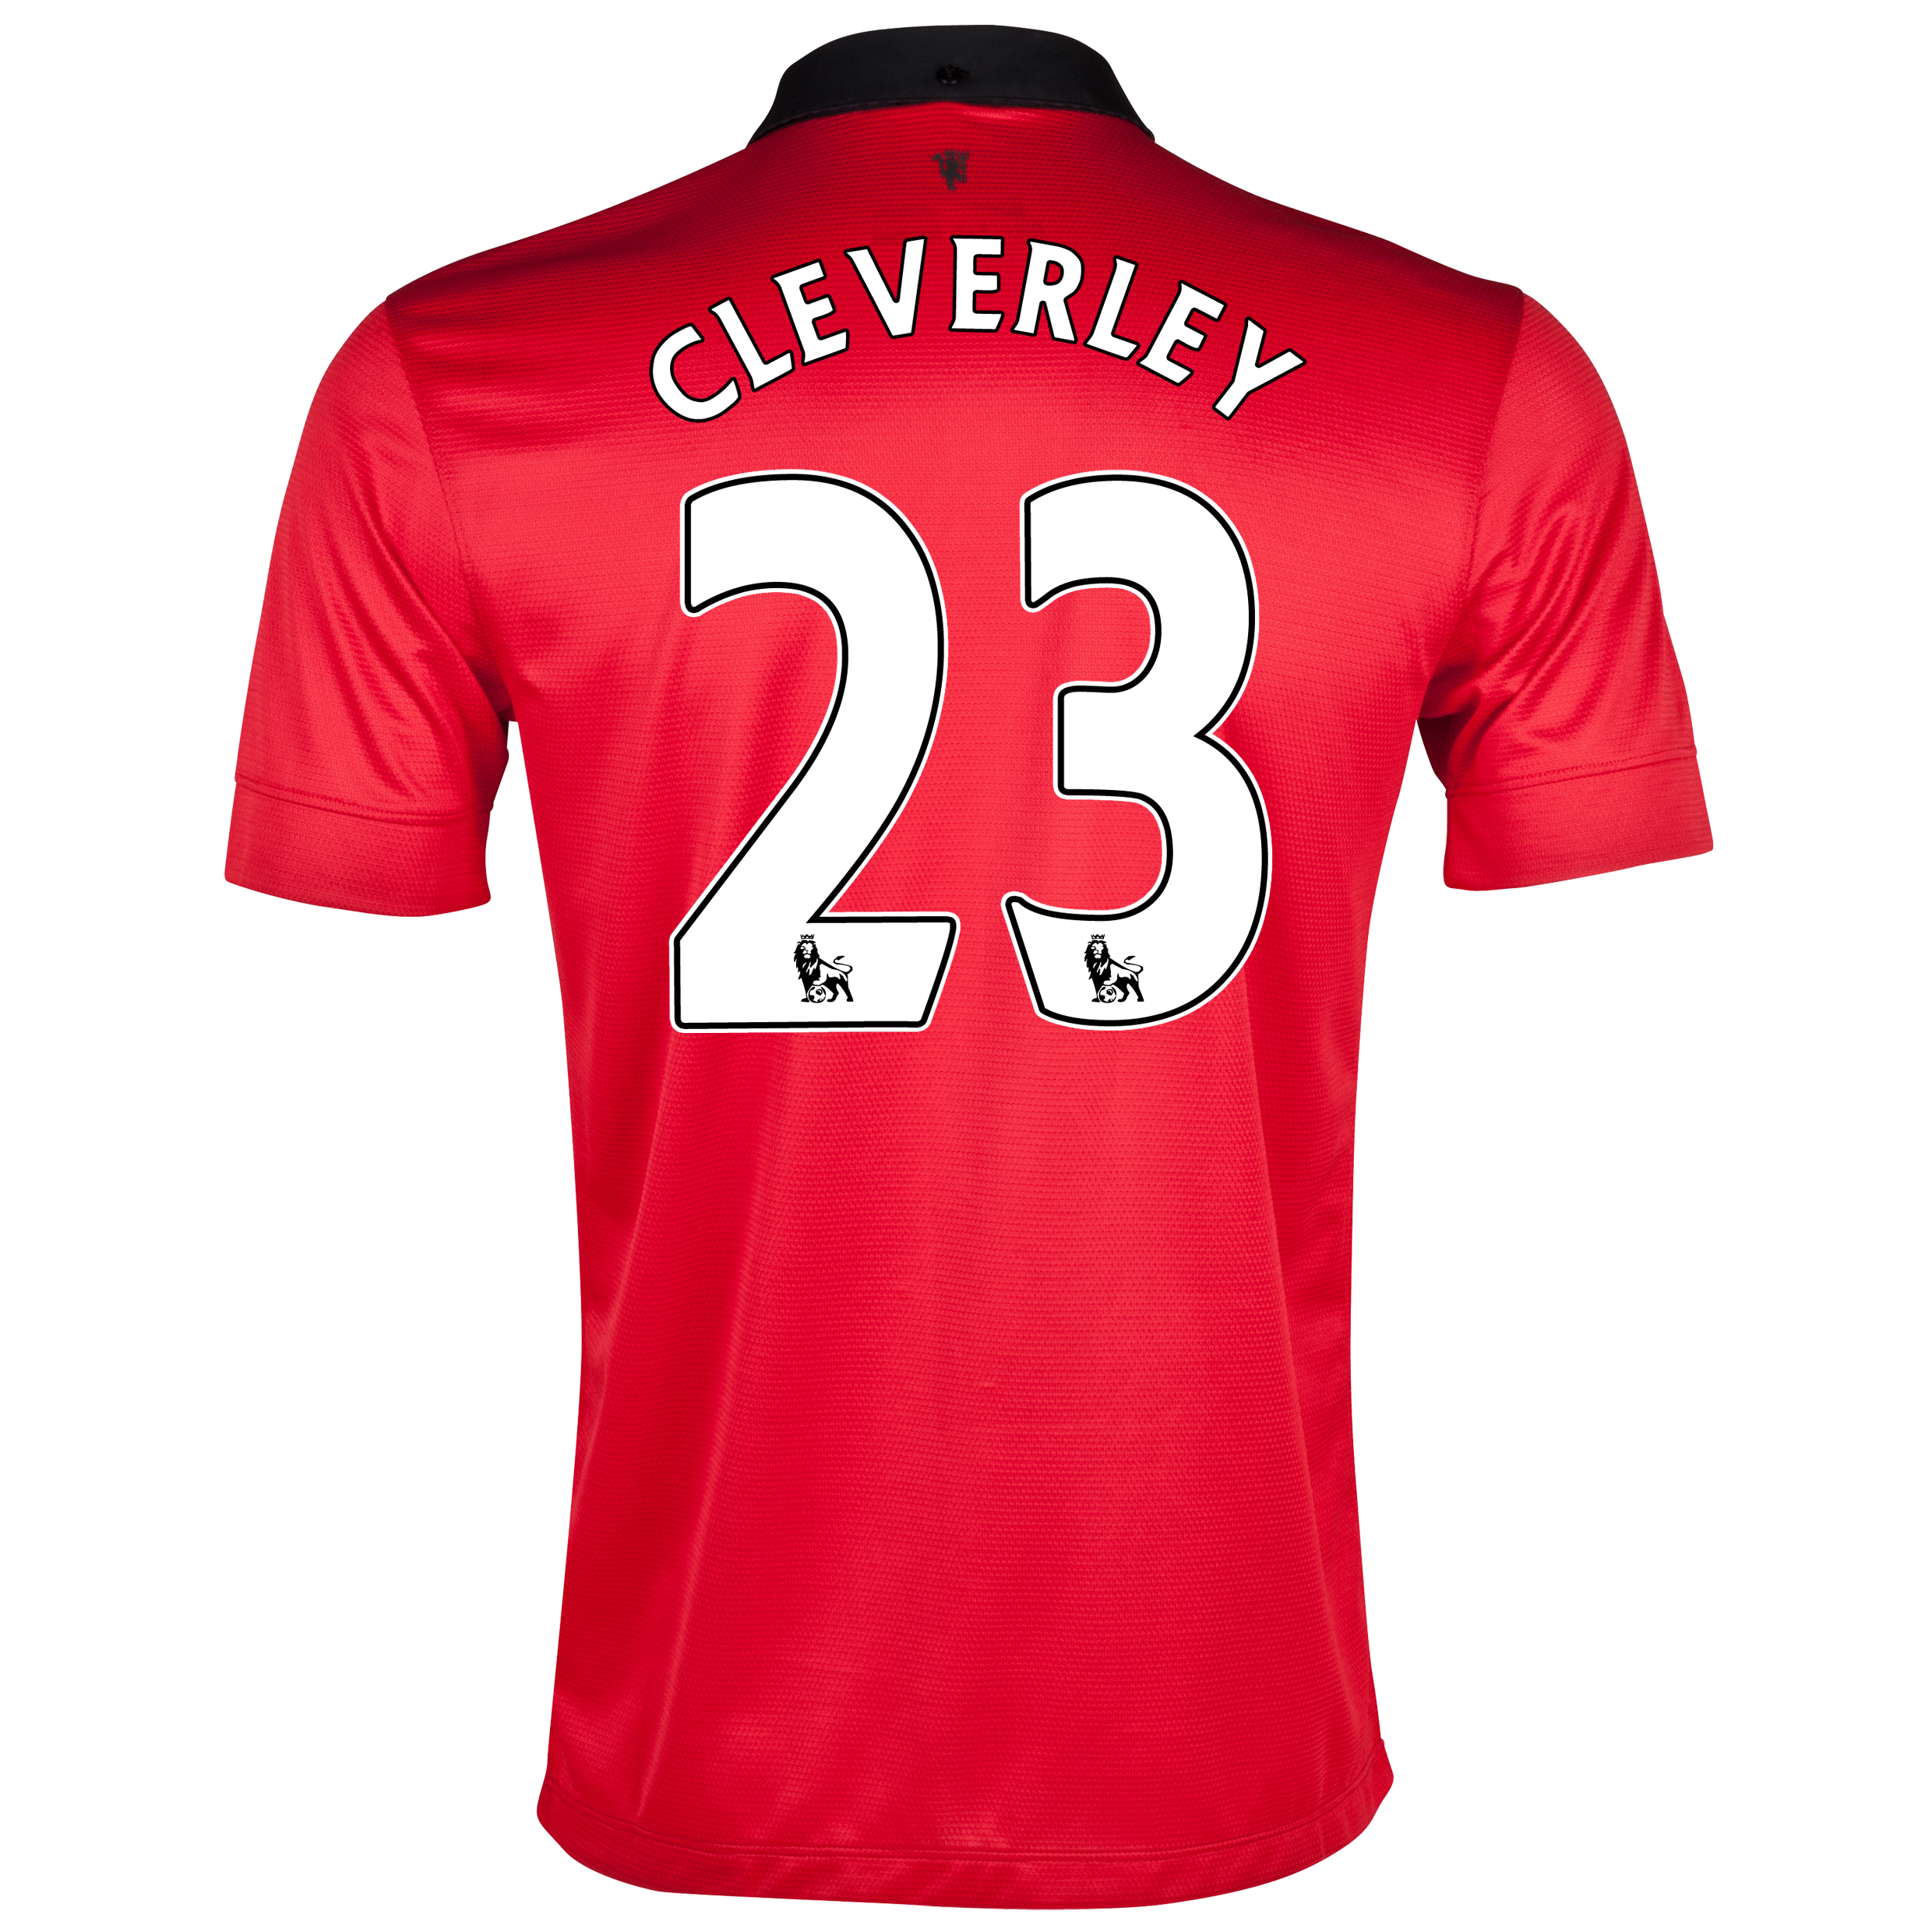 Manchester United Home Shirt 2013/14 with Cleverley 23 printing